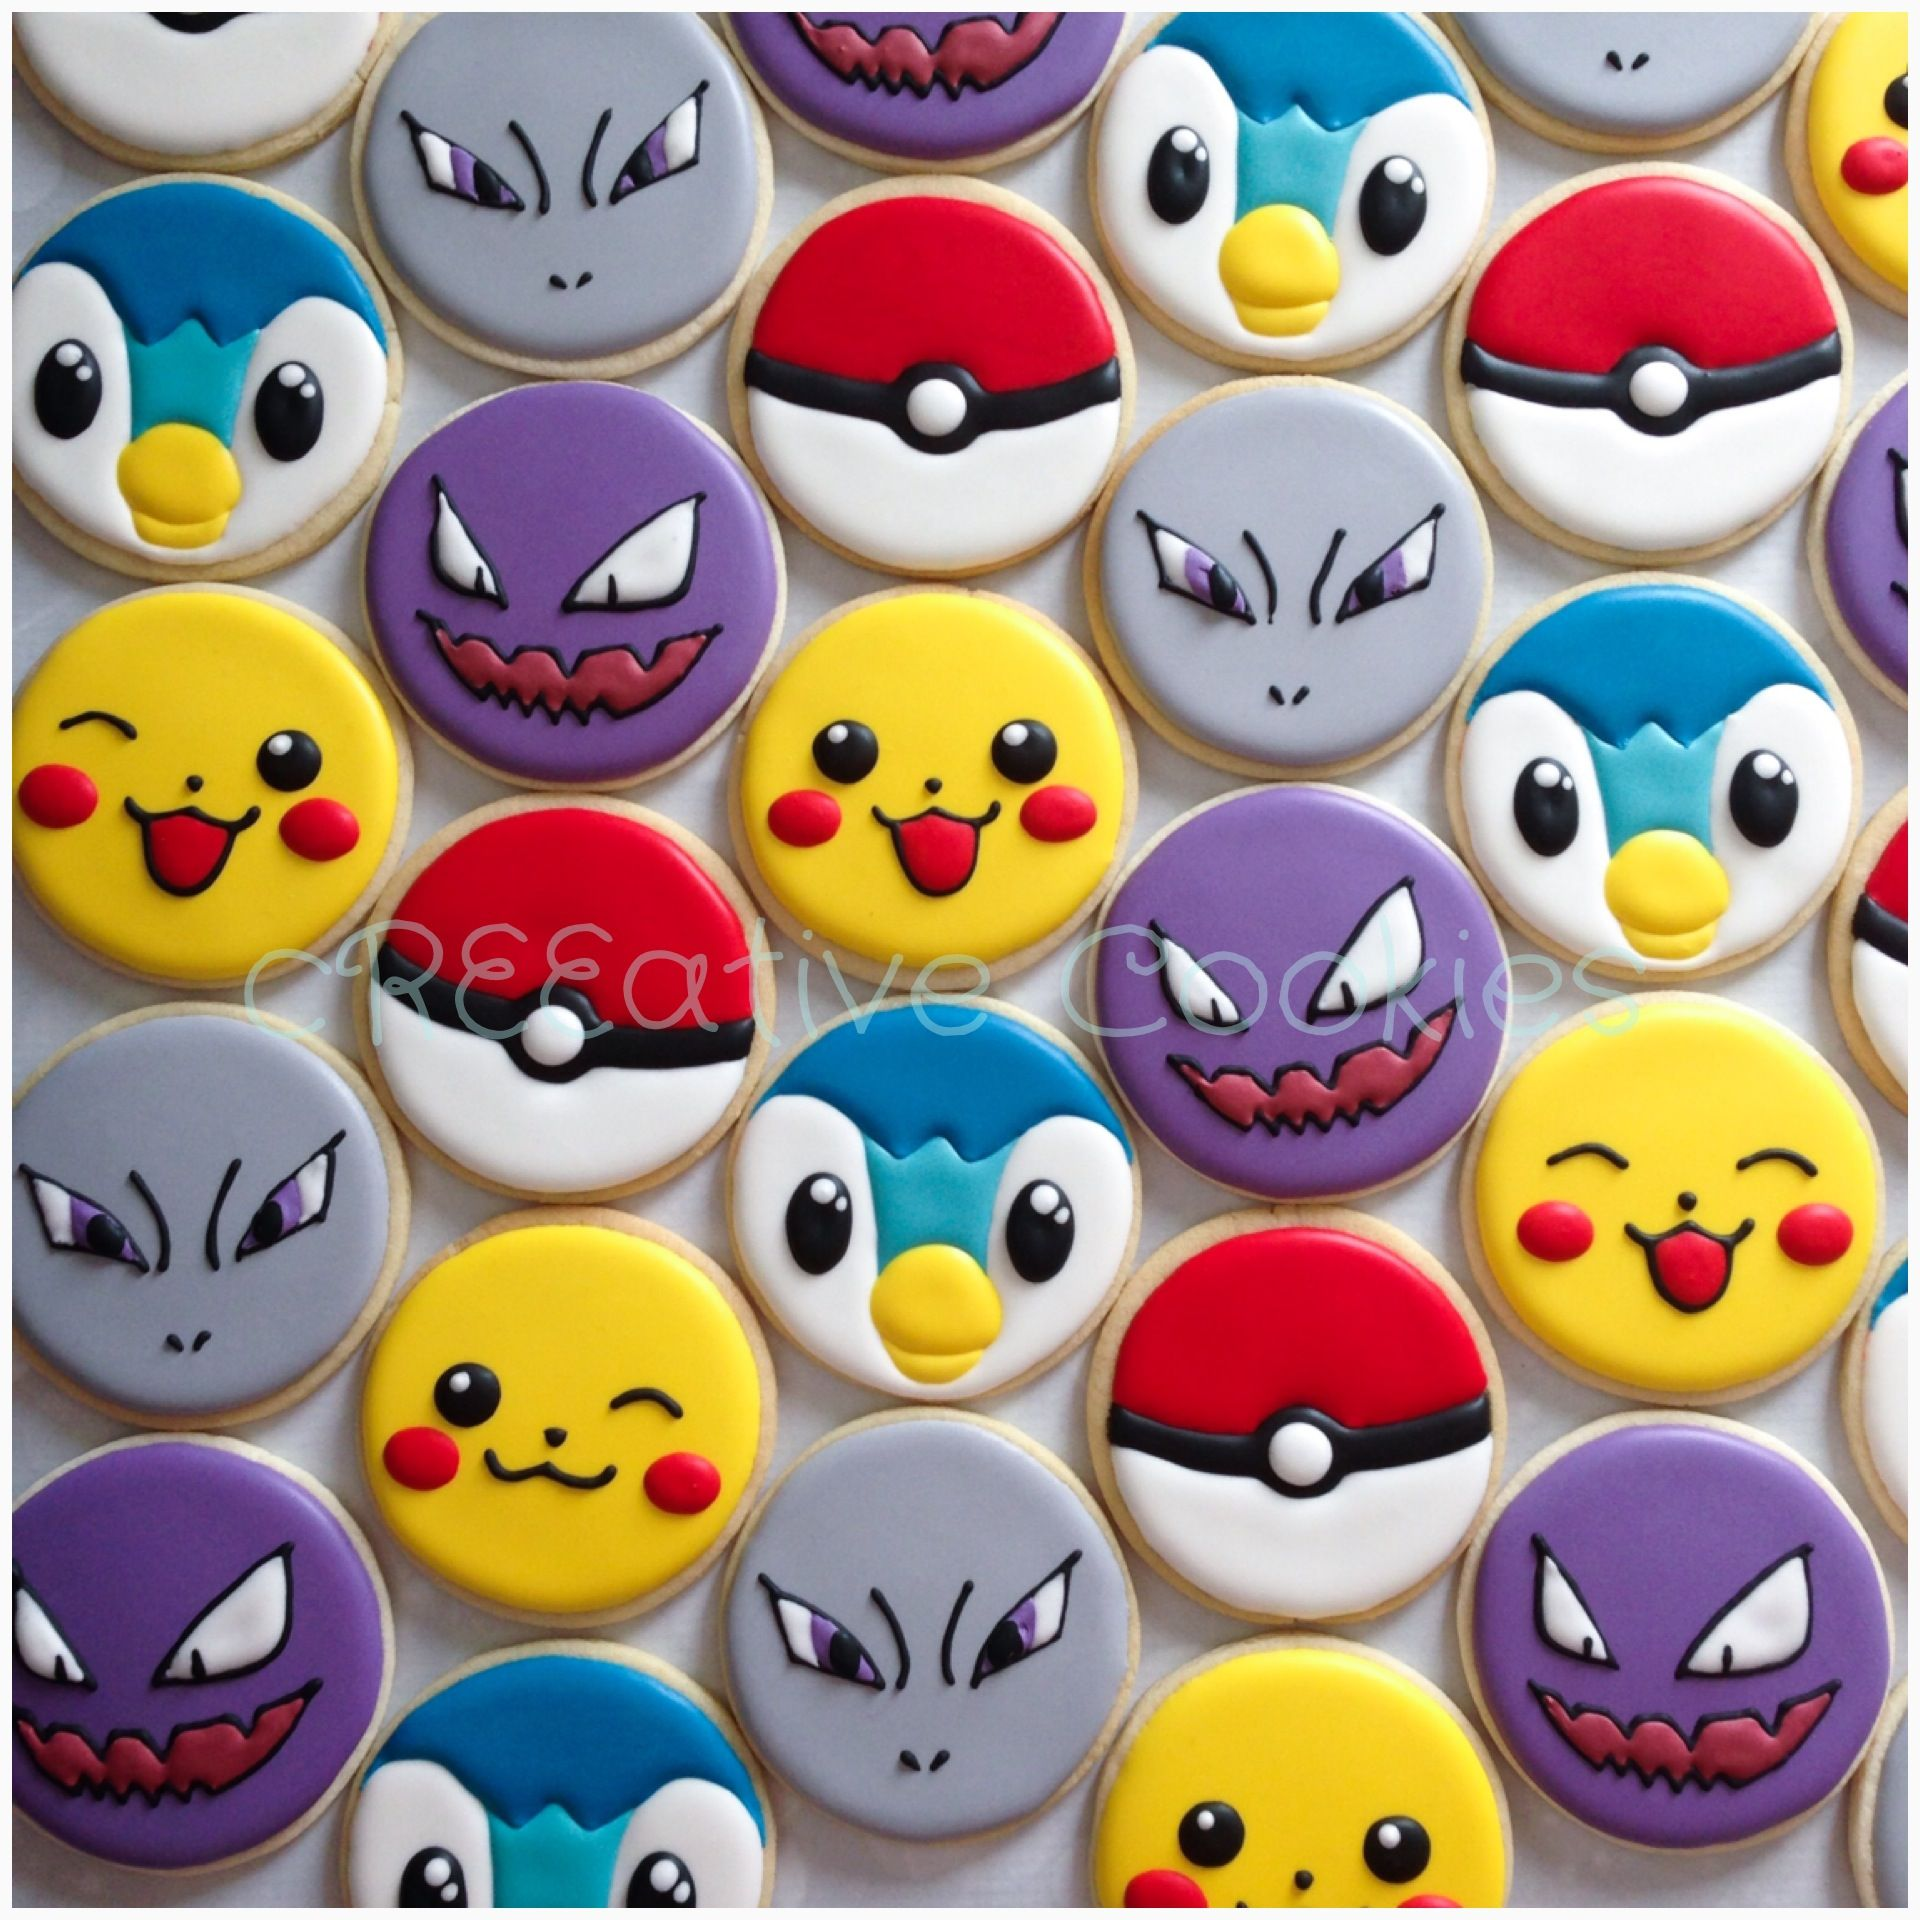 Gotta catch 'em all! Pokemon cookies! :) Find me on Facebook (cReeative Cookies) and Instagram (creeative_cookies).